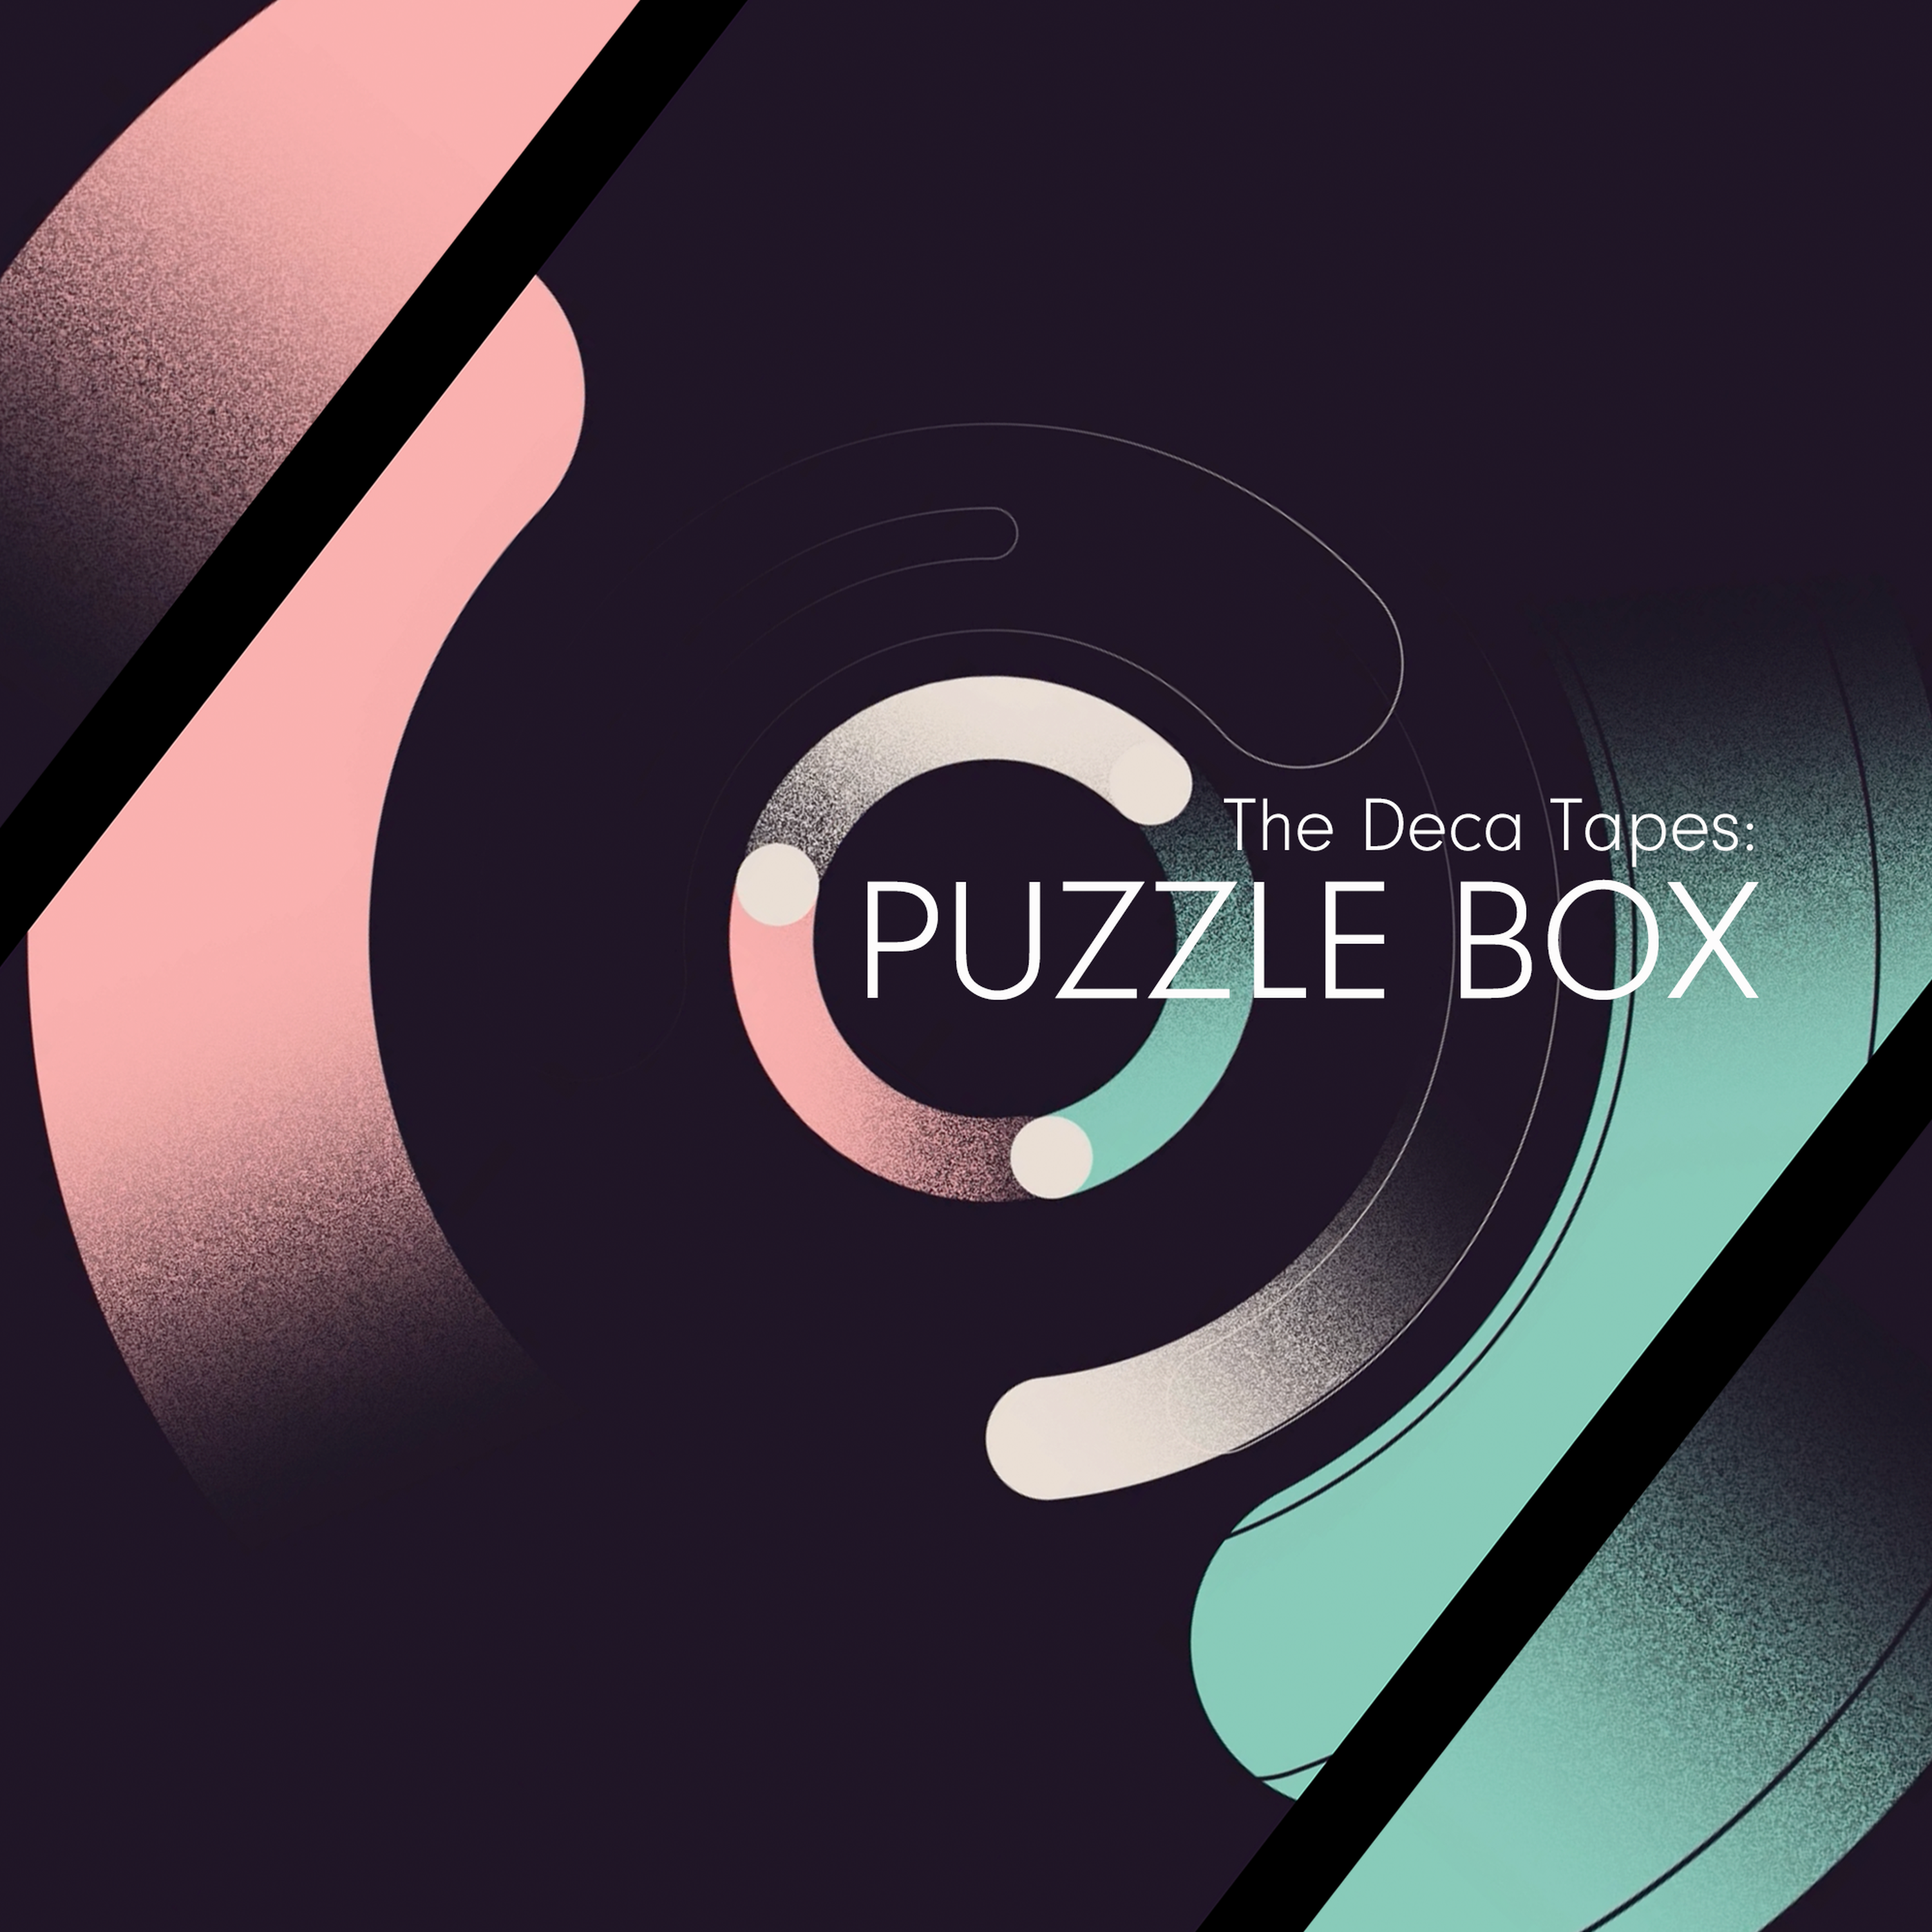 The Puzzle Box: Teaser